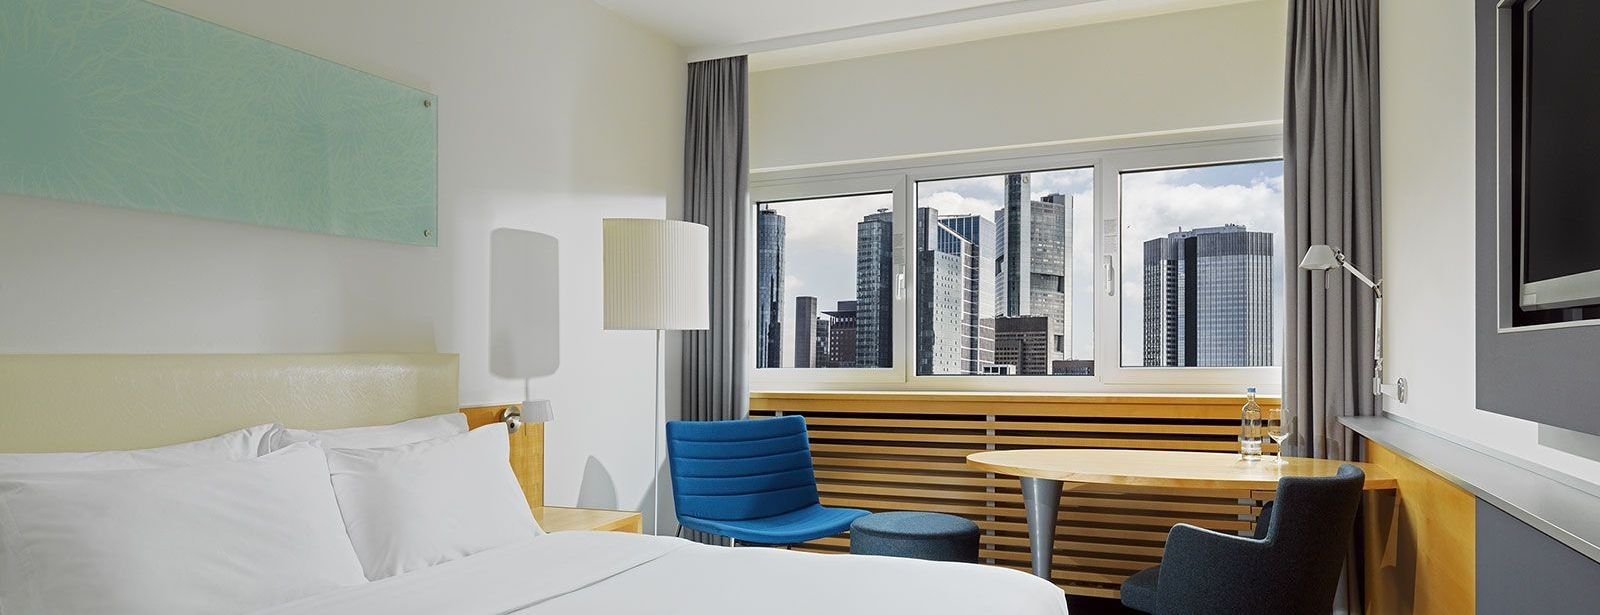 City Hotel Frankfurt: Le Méridien Superior Room with Skyline View